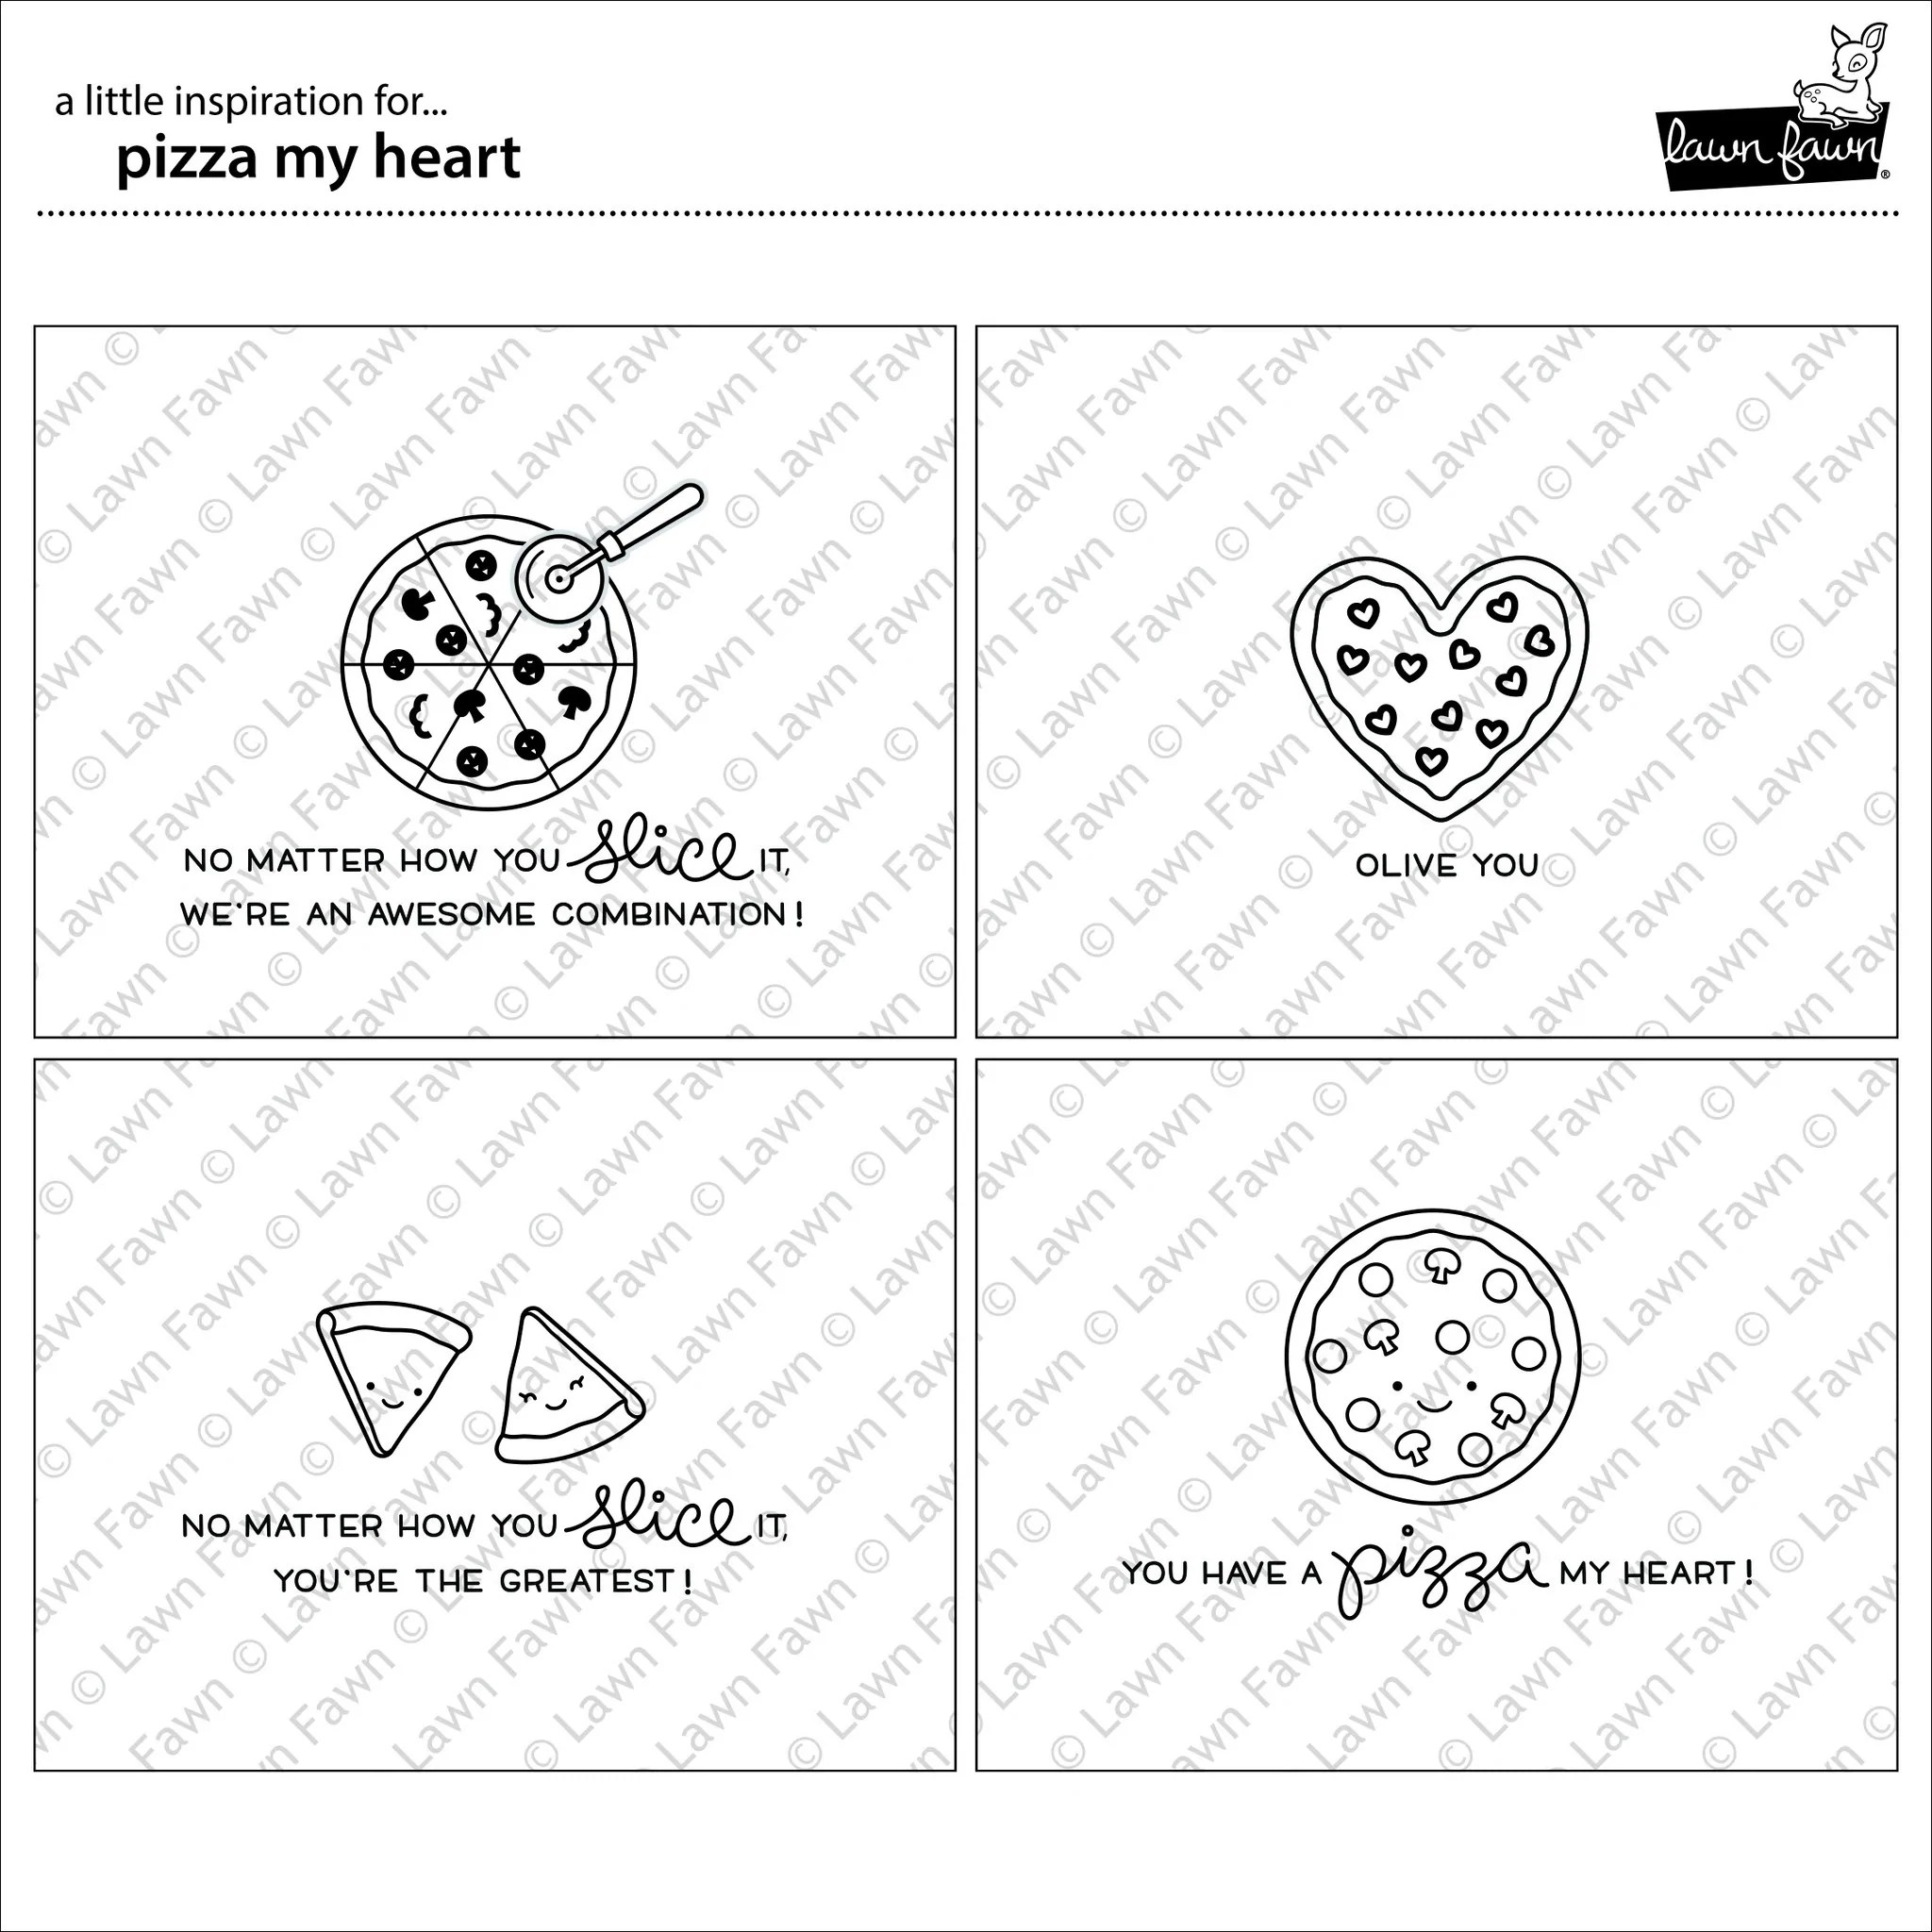 Cute Happy Faces Wallpaper Pizza My Heart Lawn Fawn